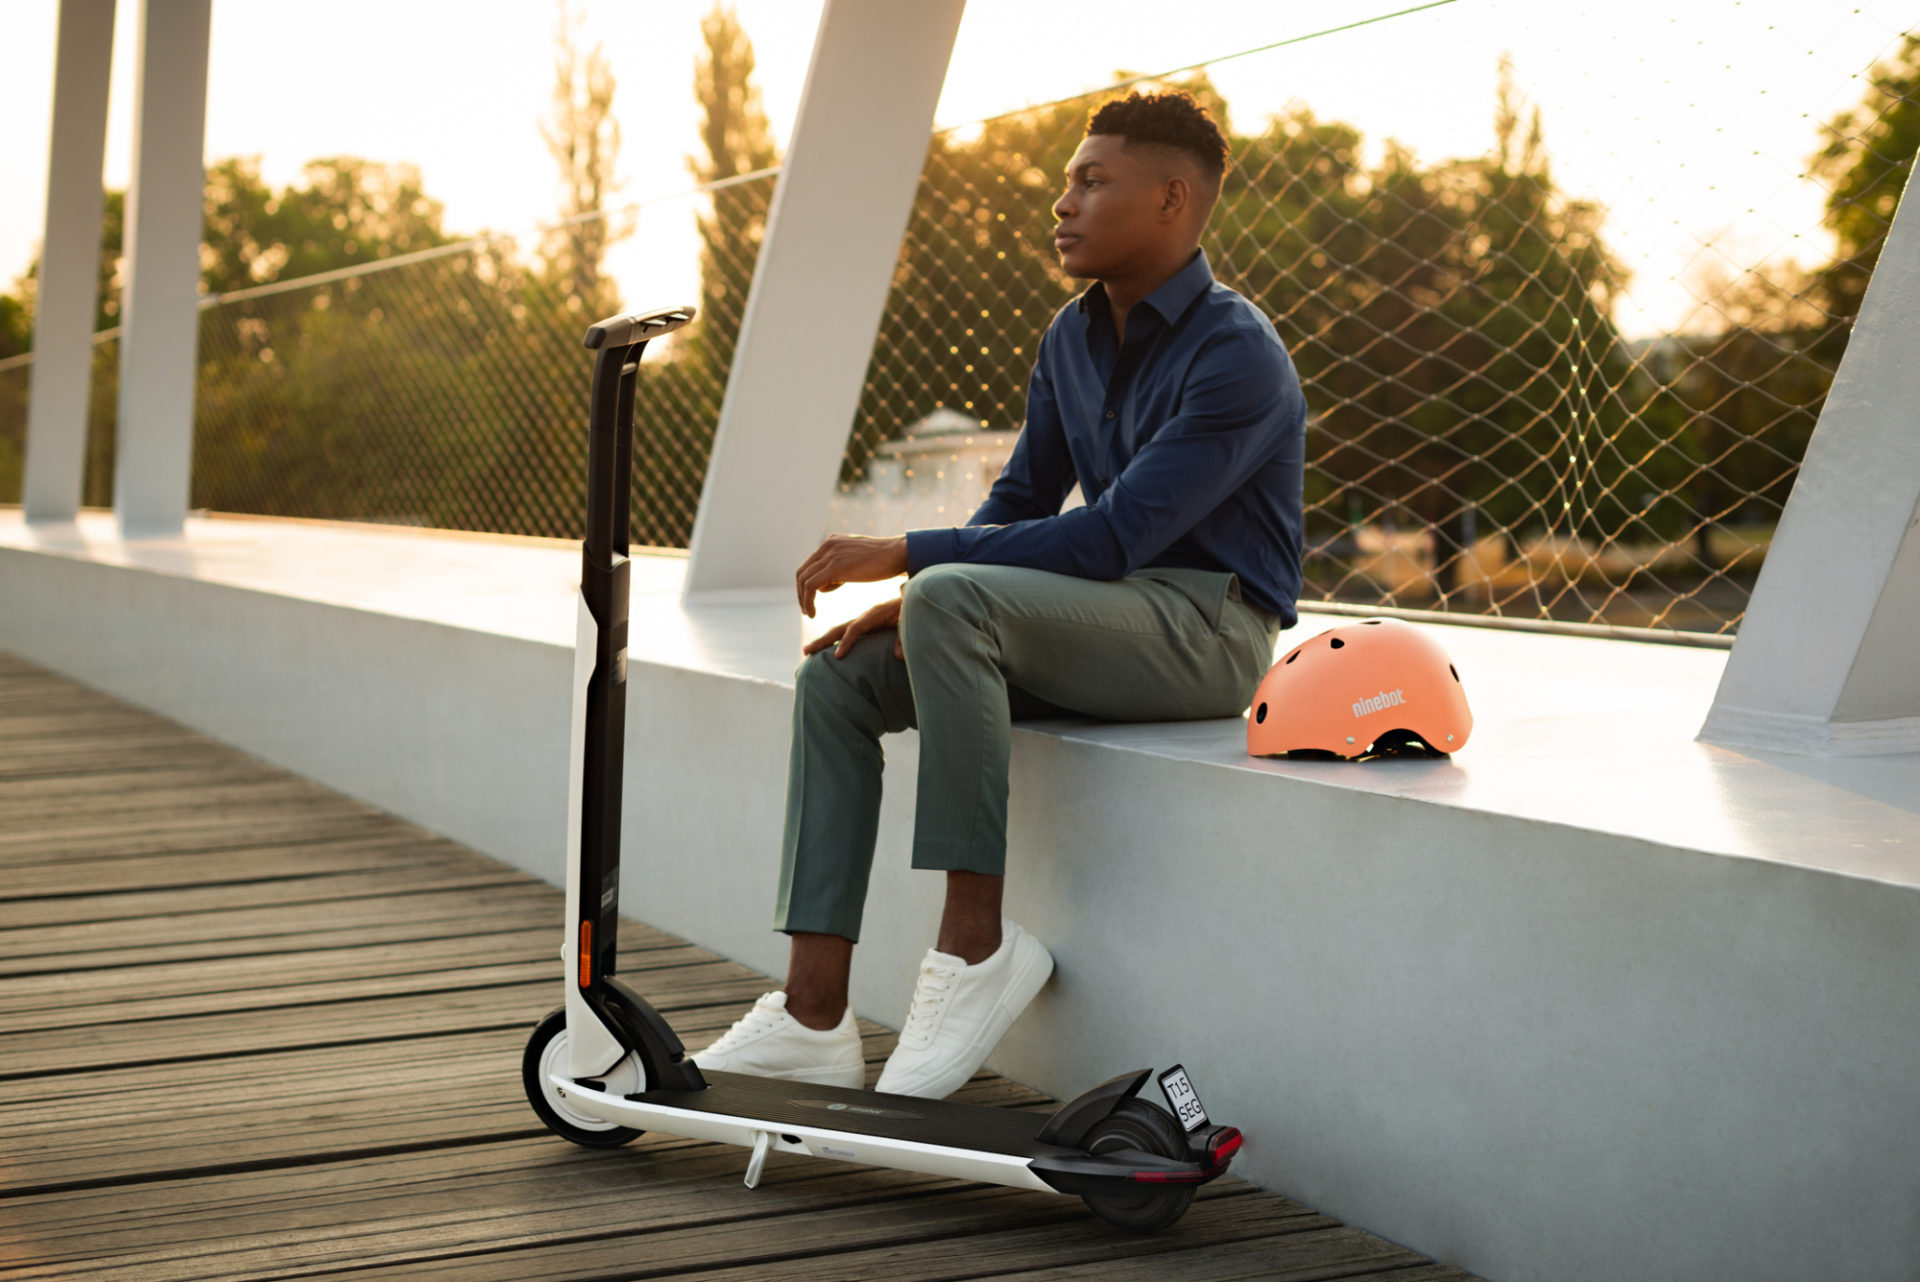 [hero] Ninebot KickScooter Air T15D Powered by Segway